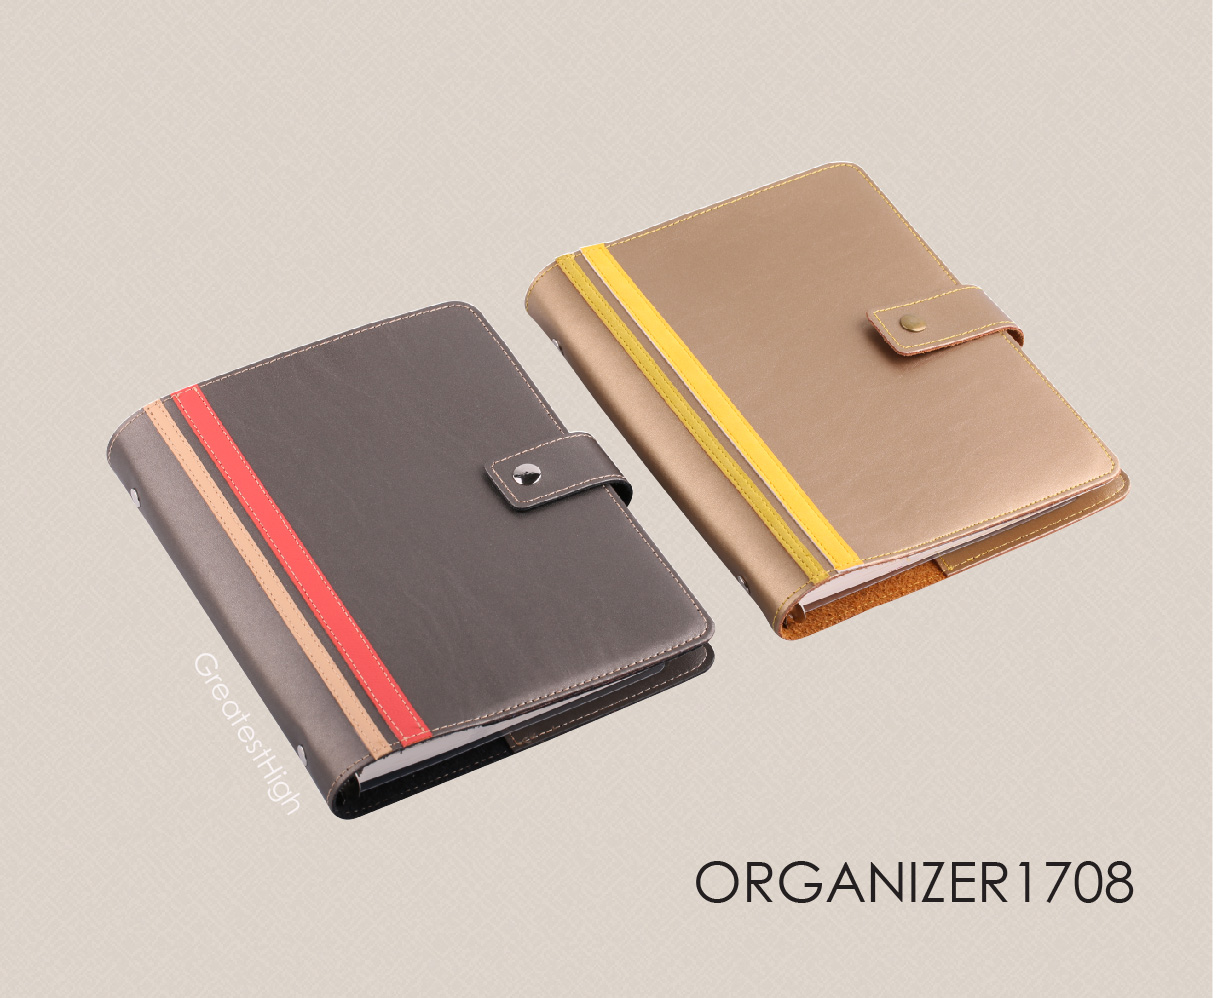 Organizer no. OR 1708, Bridge